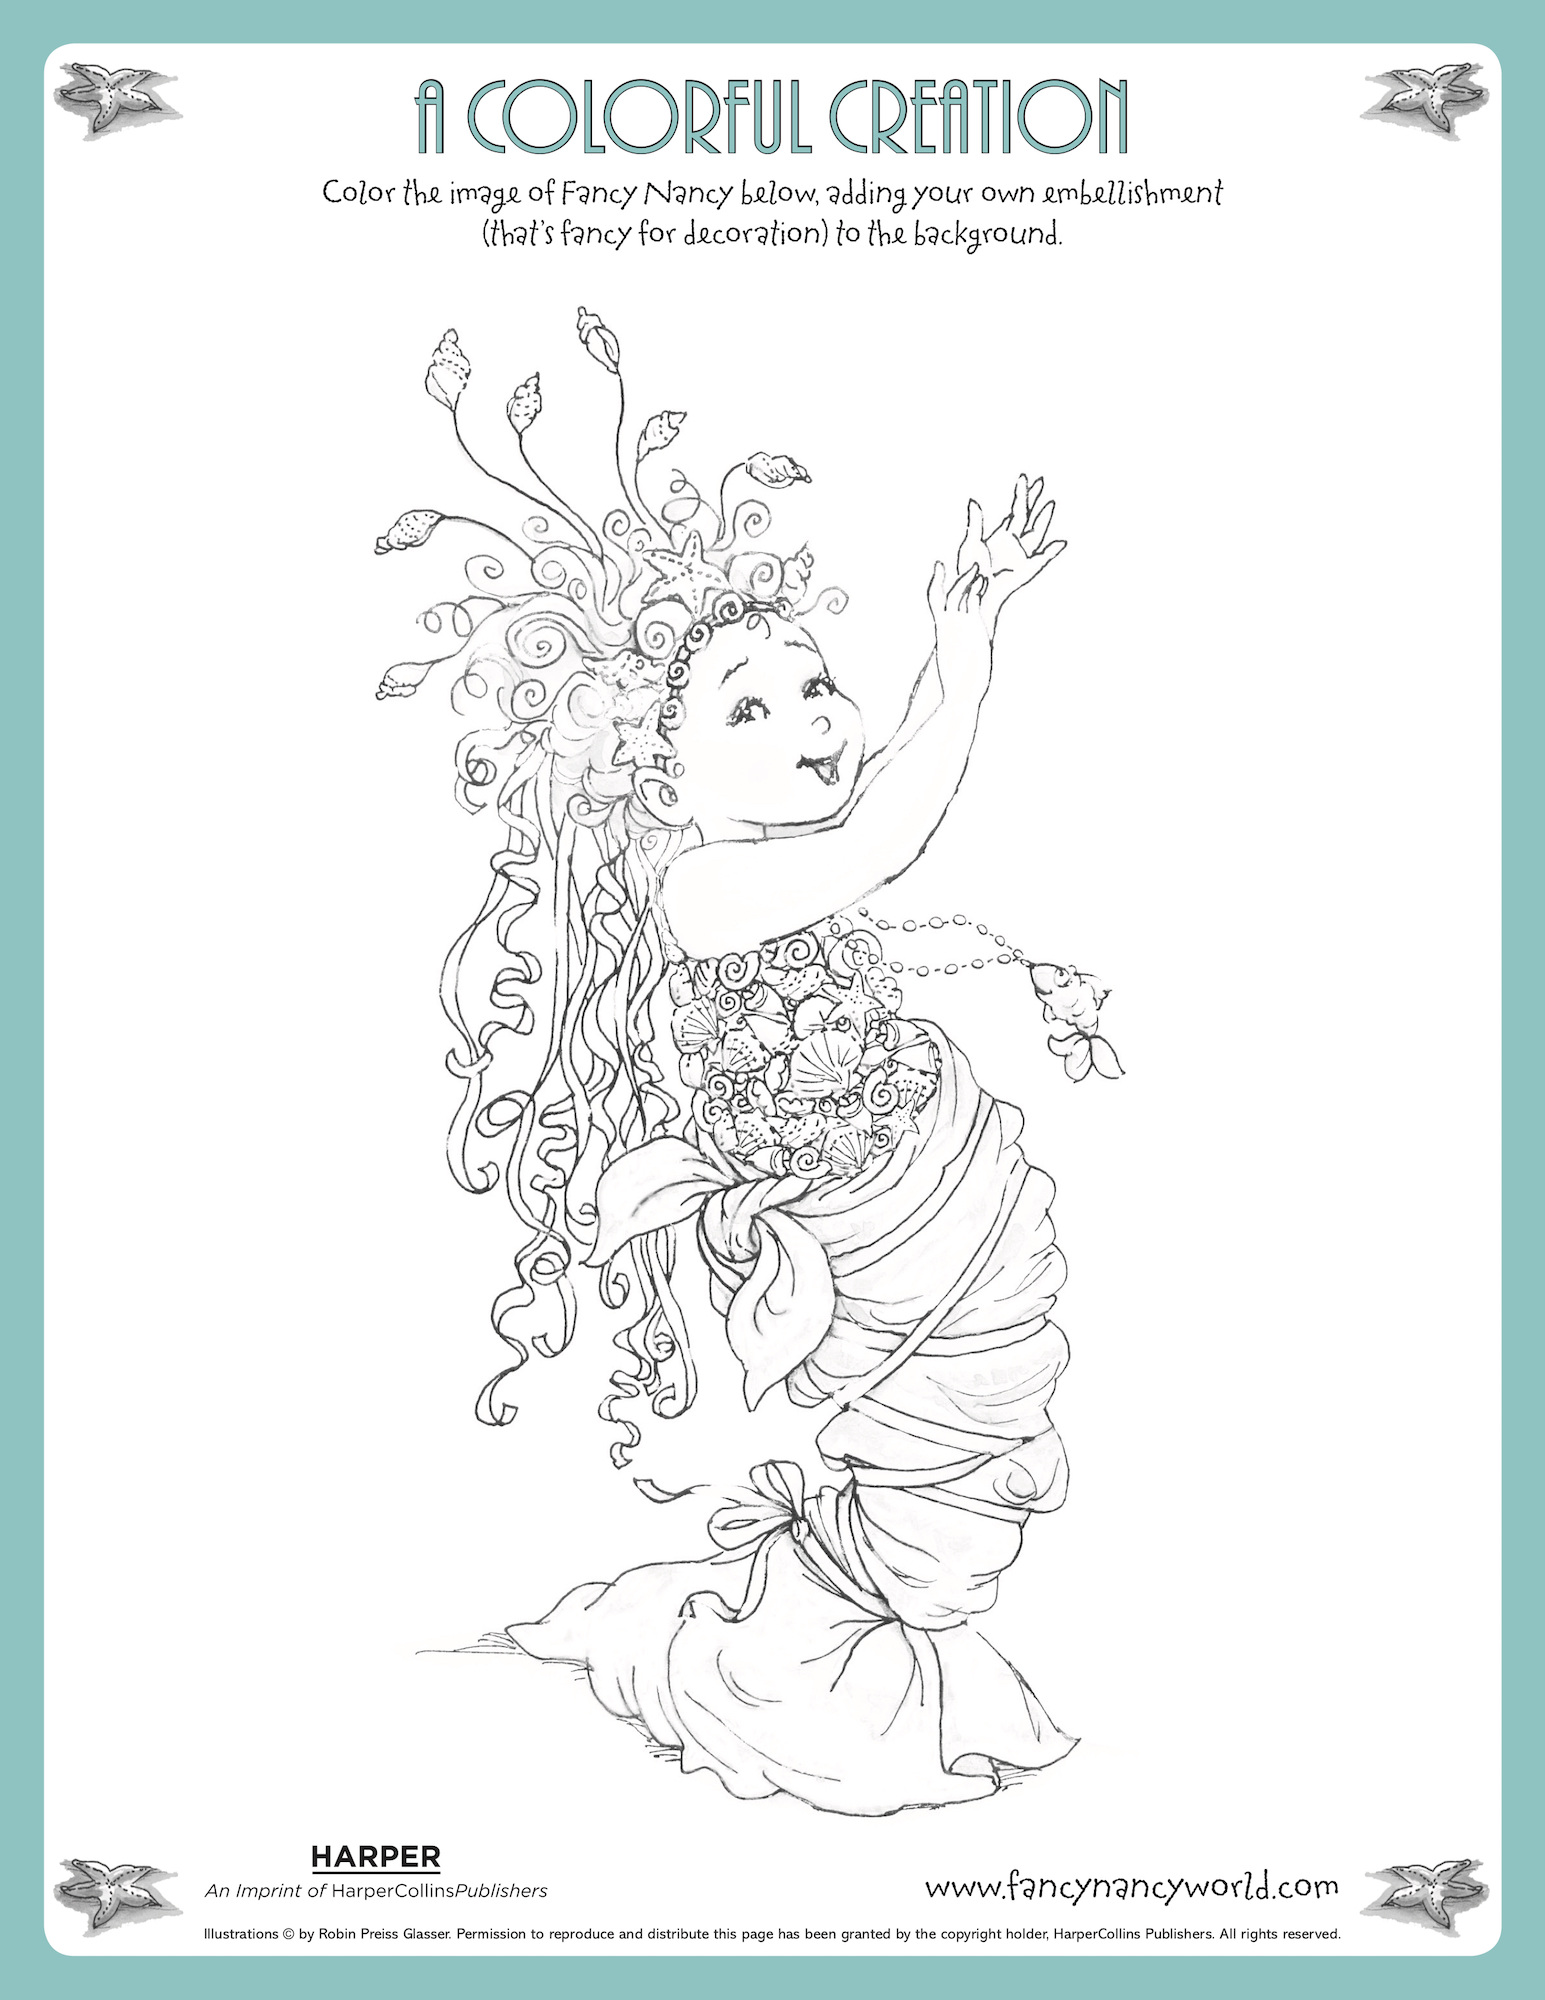 Free Fancy Nancy mermaid ballet coloring page for kids to color from the new Disney Jr. show.